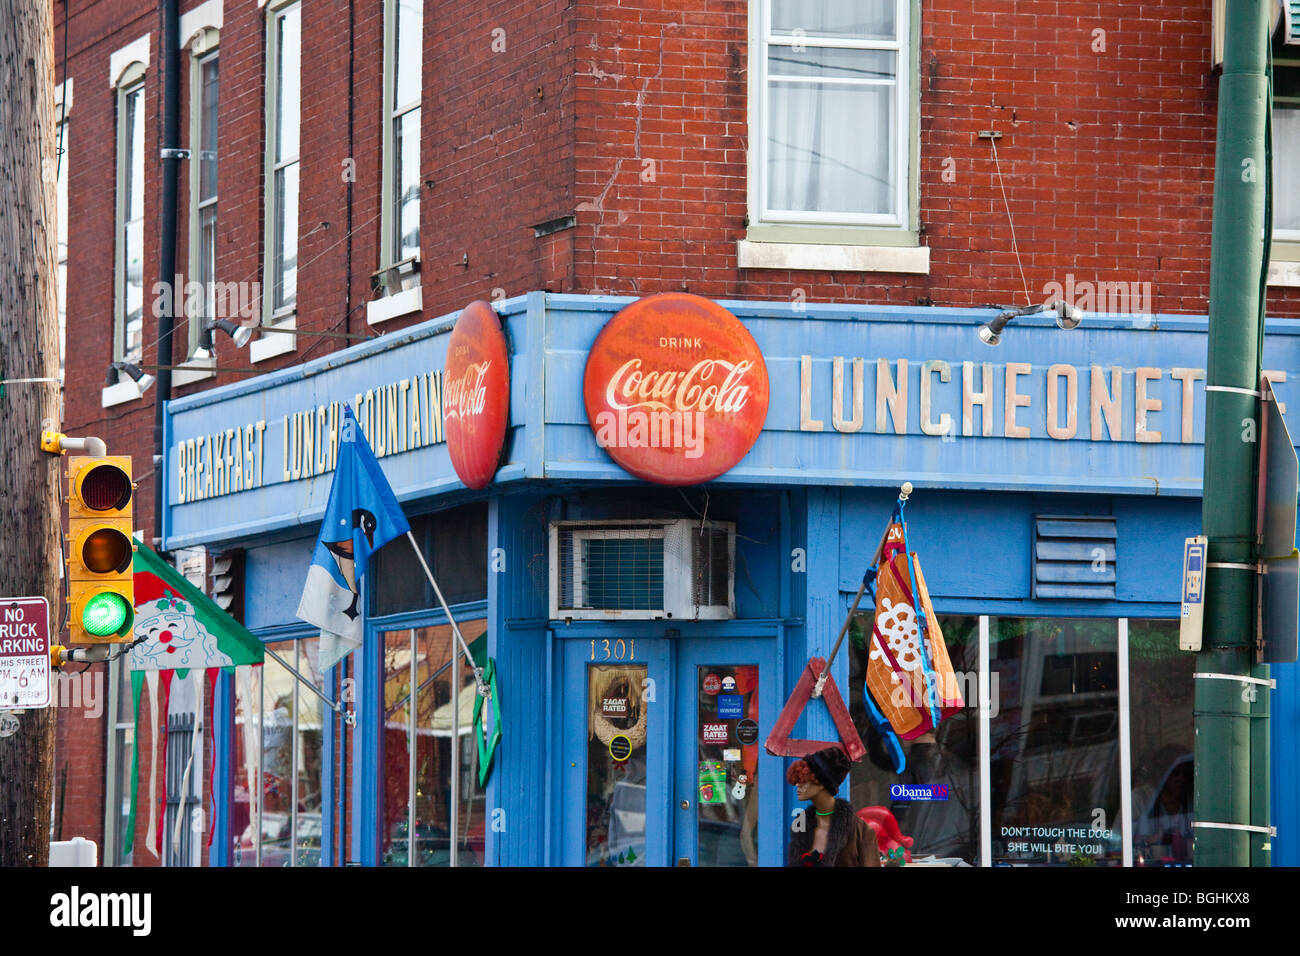 Luncheonette Stock Photos & Luncheonette Stock Images - Alamy